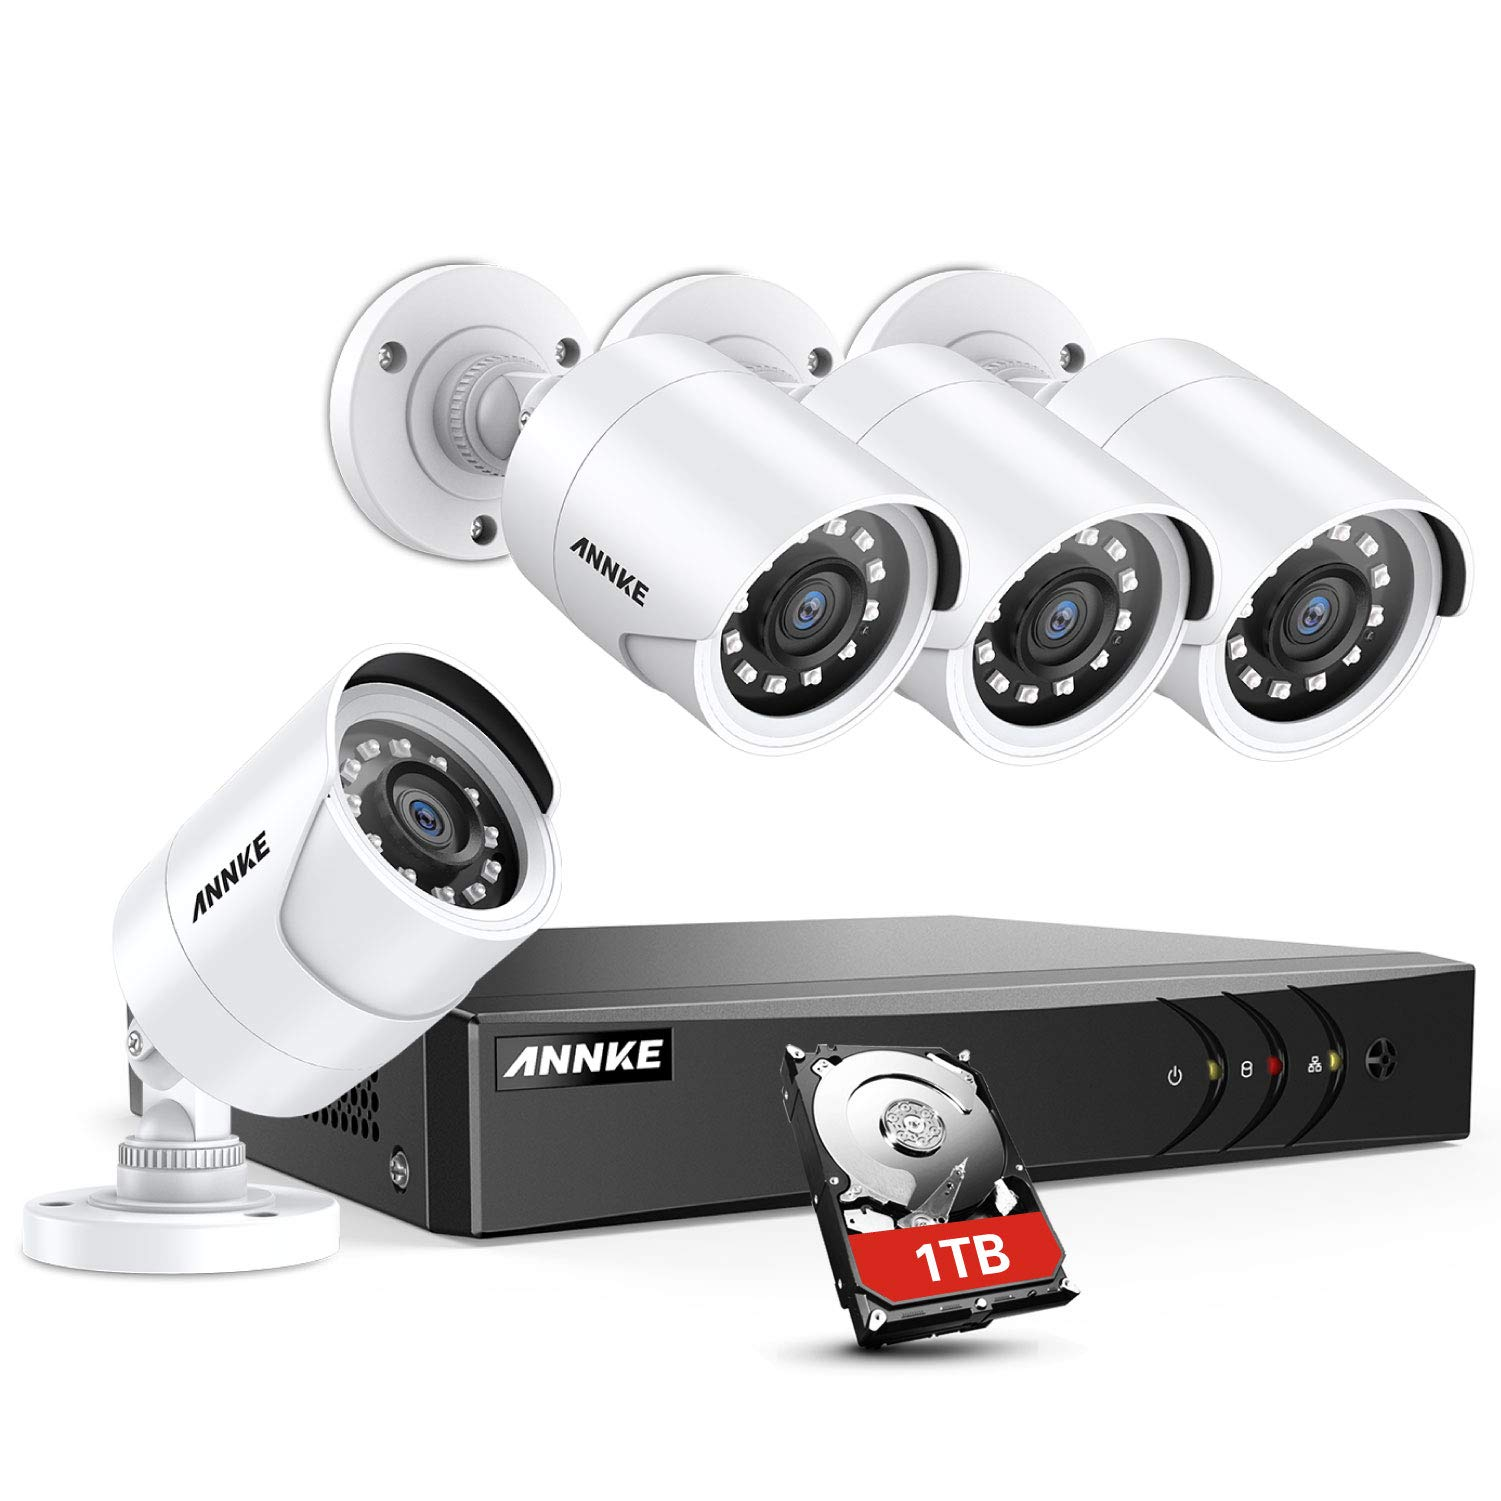 ANNKE 8 Channel Security Camera System 5-in-1 1080P lite H.264+ Wired DVR with 1TB Surveillance Hard Disk Drive and 4X 1080P HD Weatherproof Bullet CCTV Cameras with IR-cut Night Vision LEDs